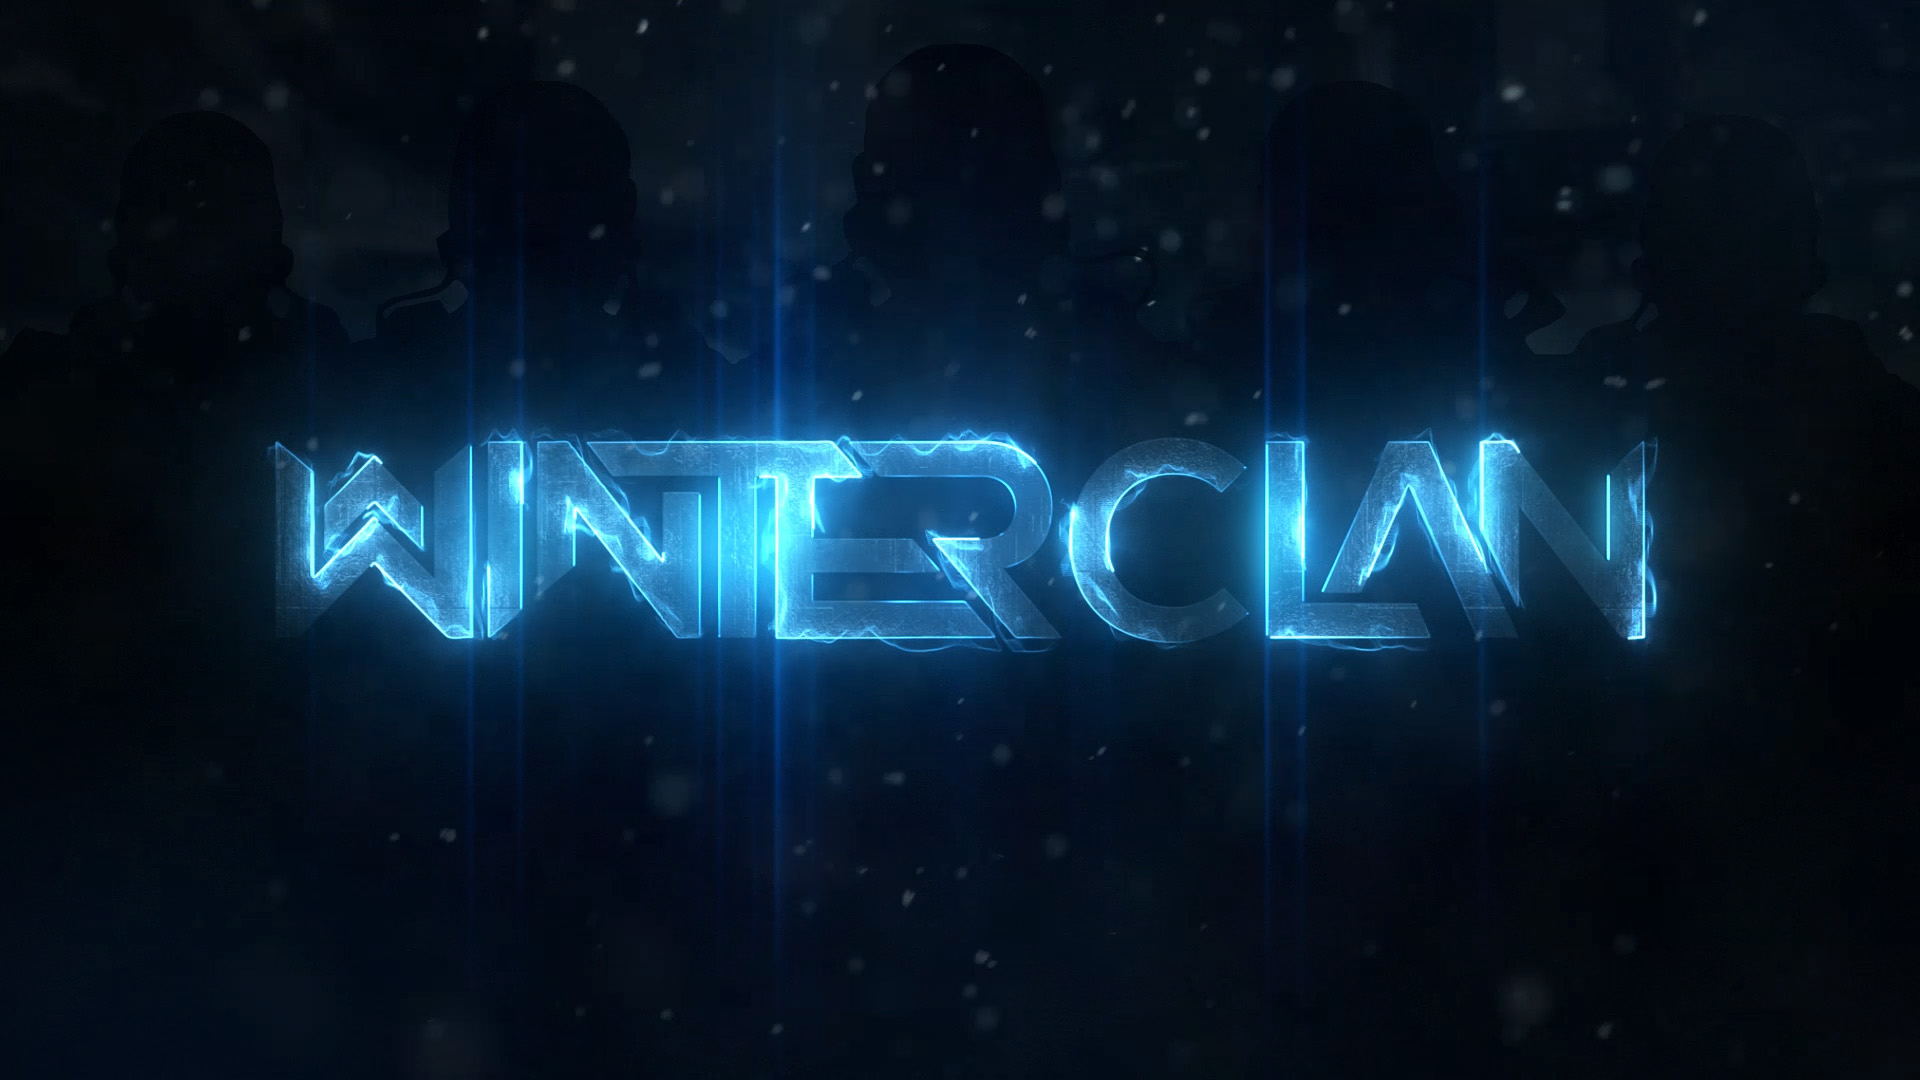 Winter Clan | Looking For Clan